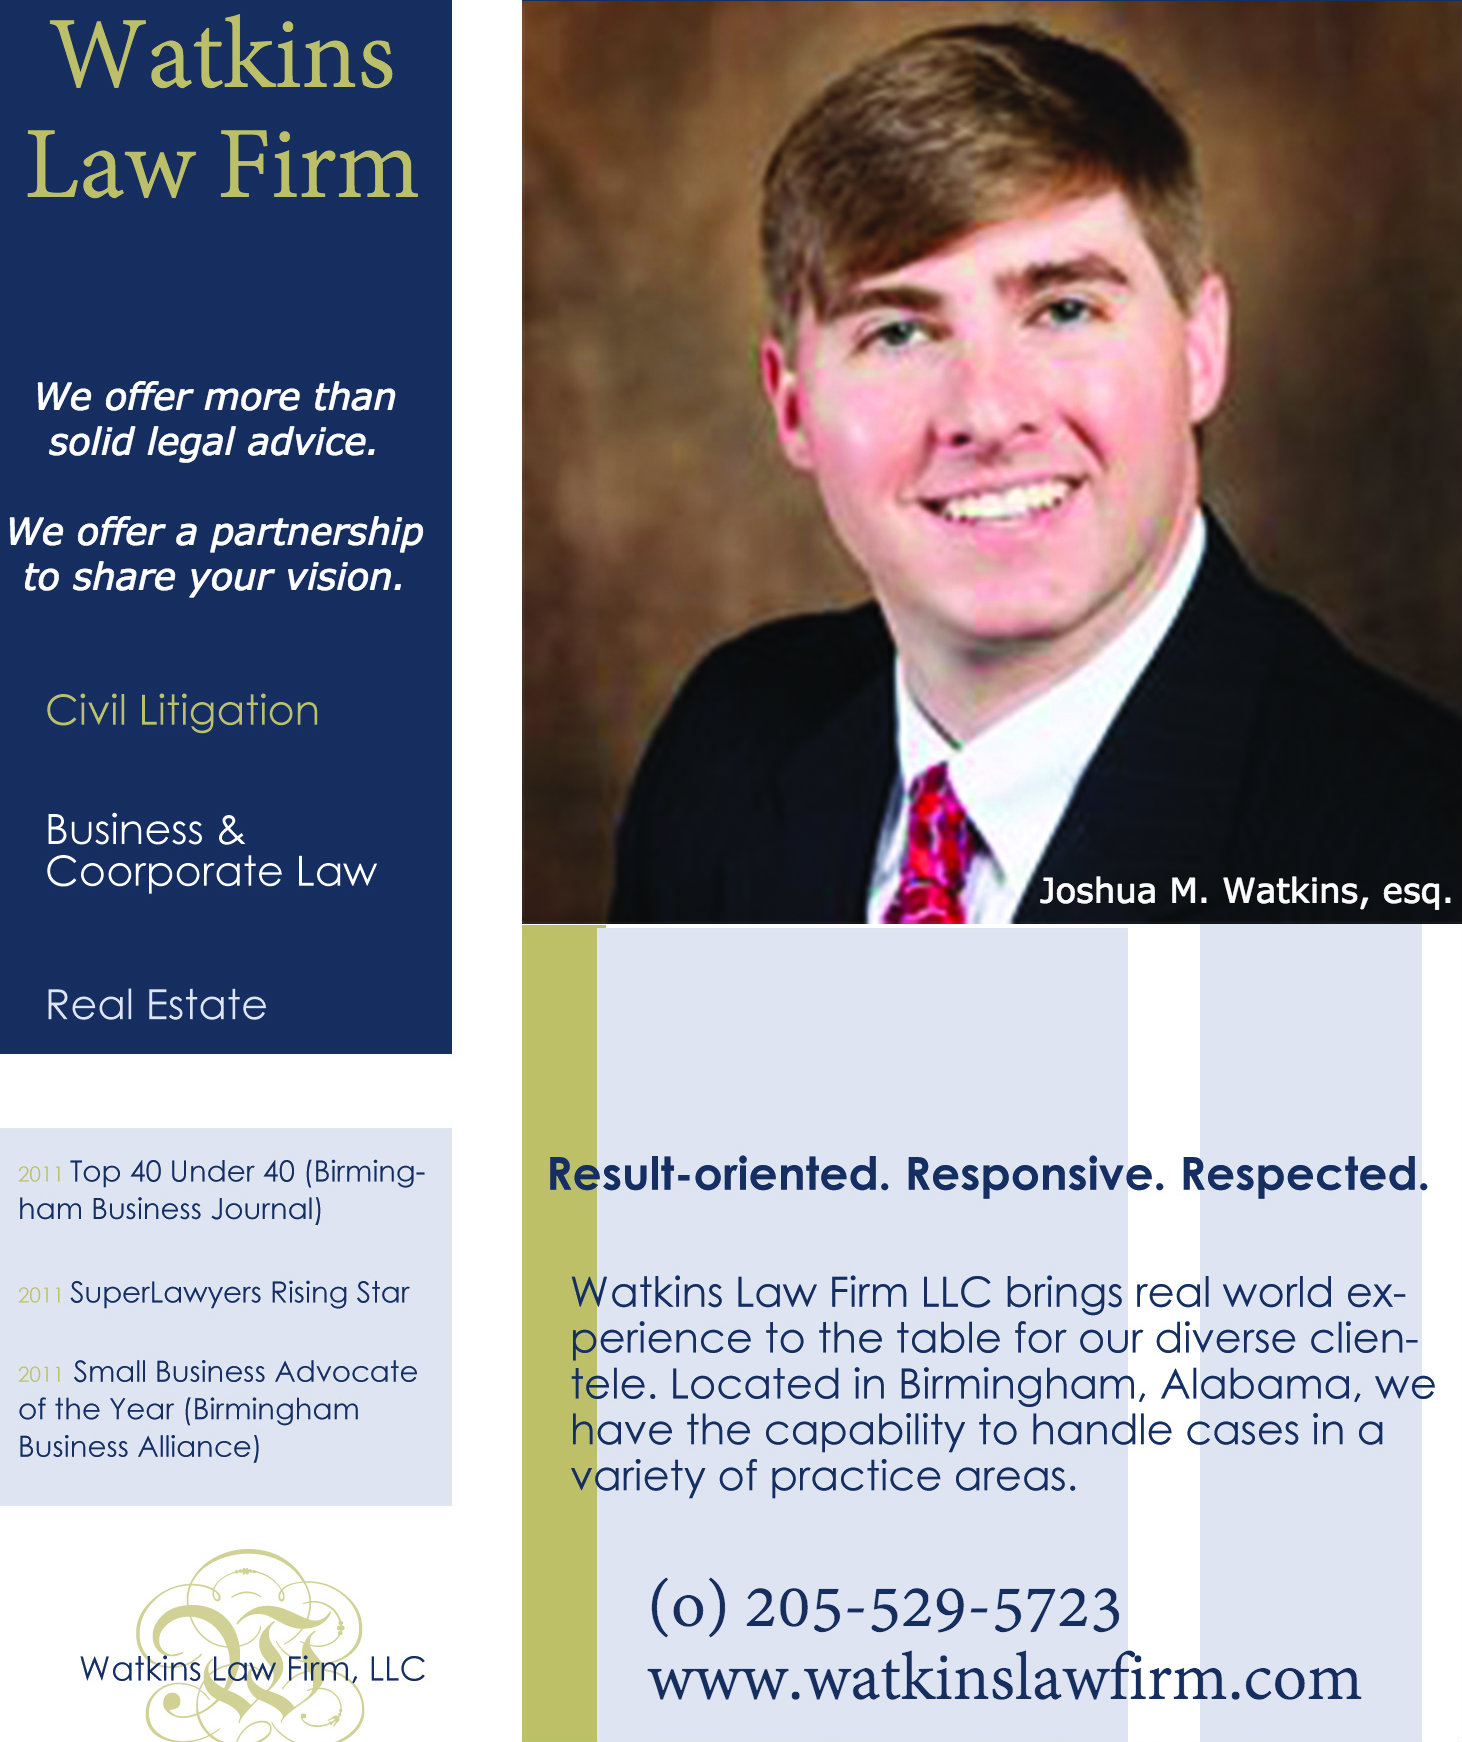 Watkins Law Firm, LLC